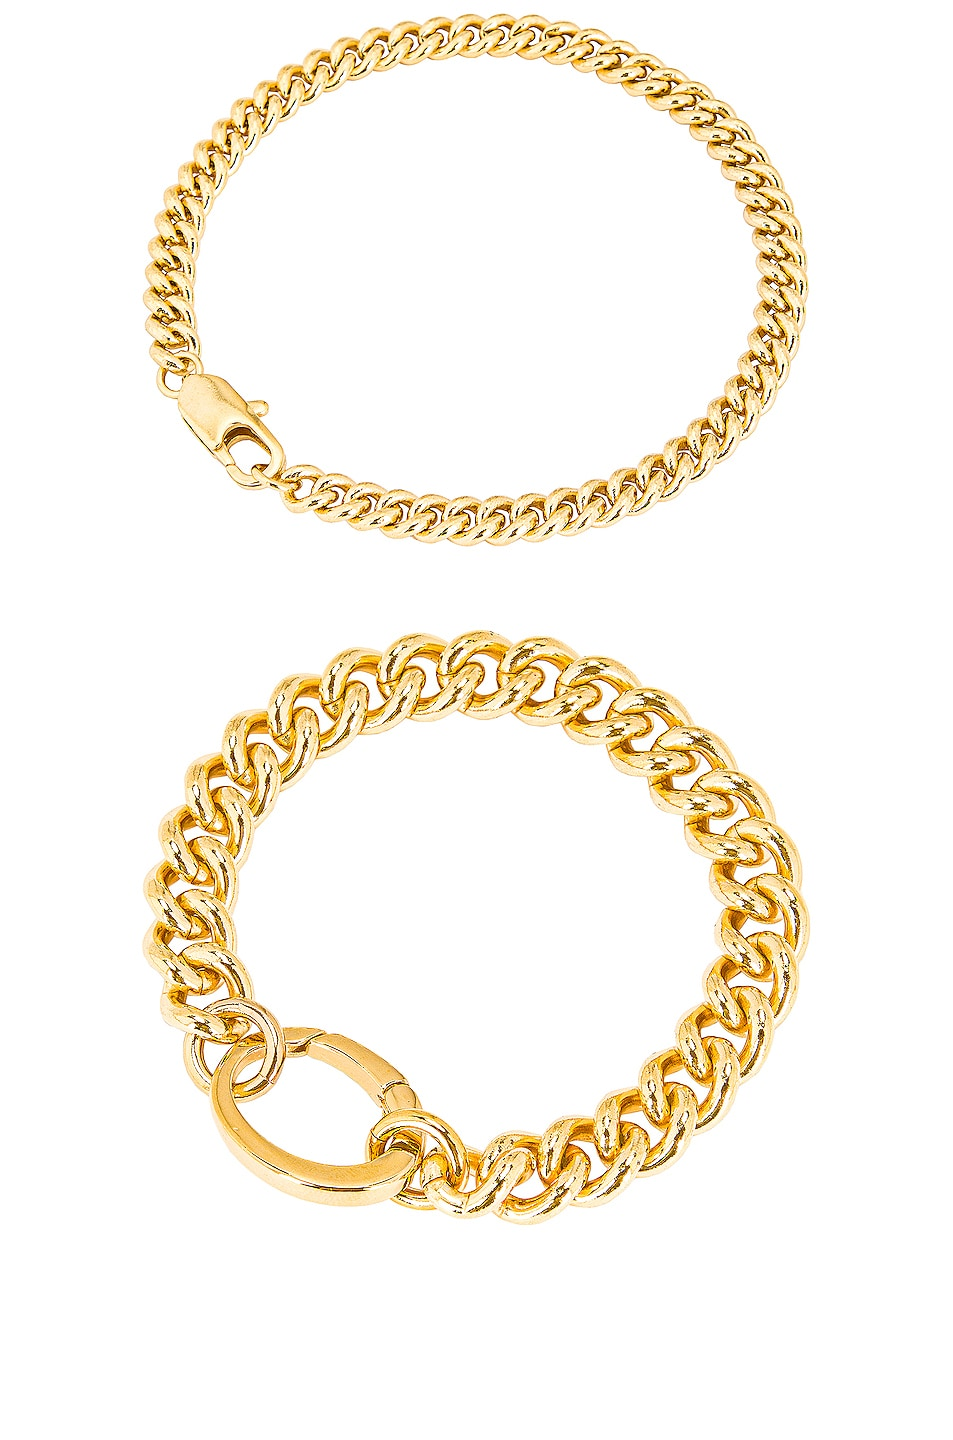 Image 1 of LAURA LOMBARDI for FWRD Presa and Curb Chain Bracelet Set in Gold